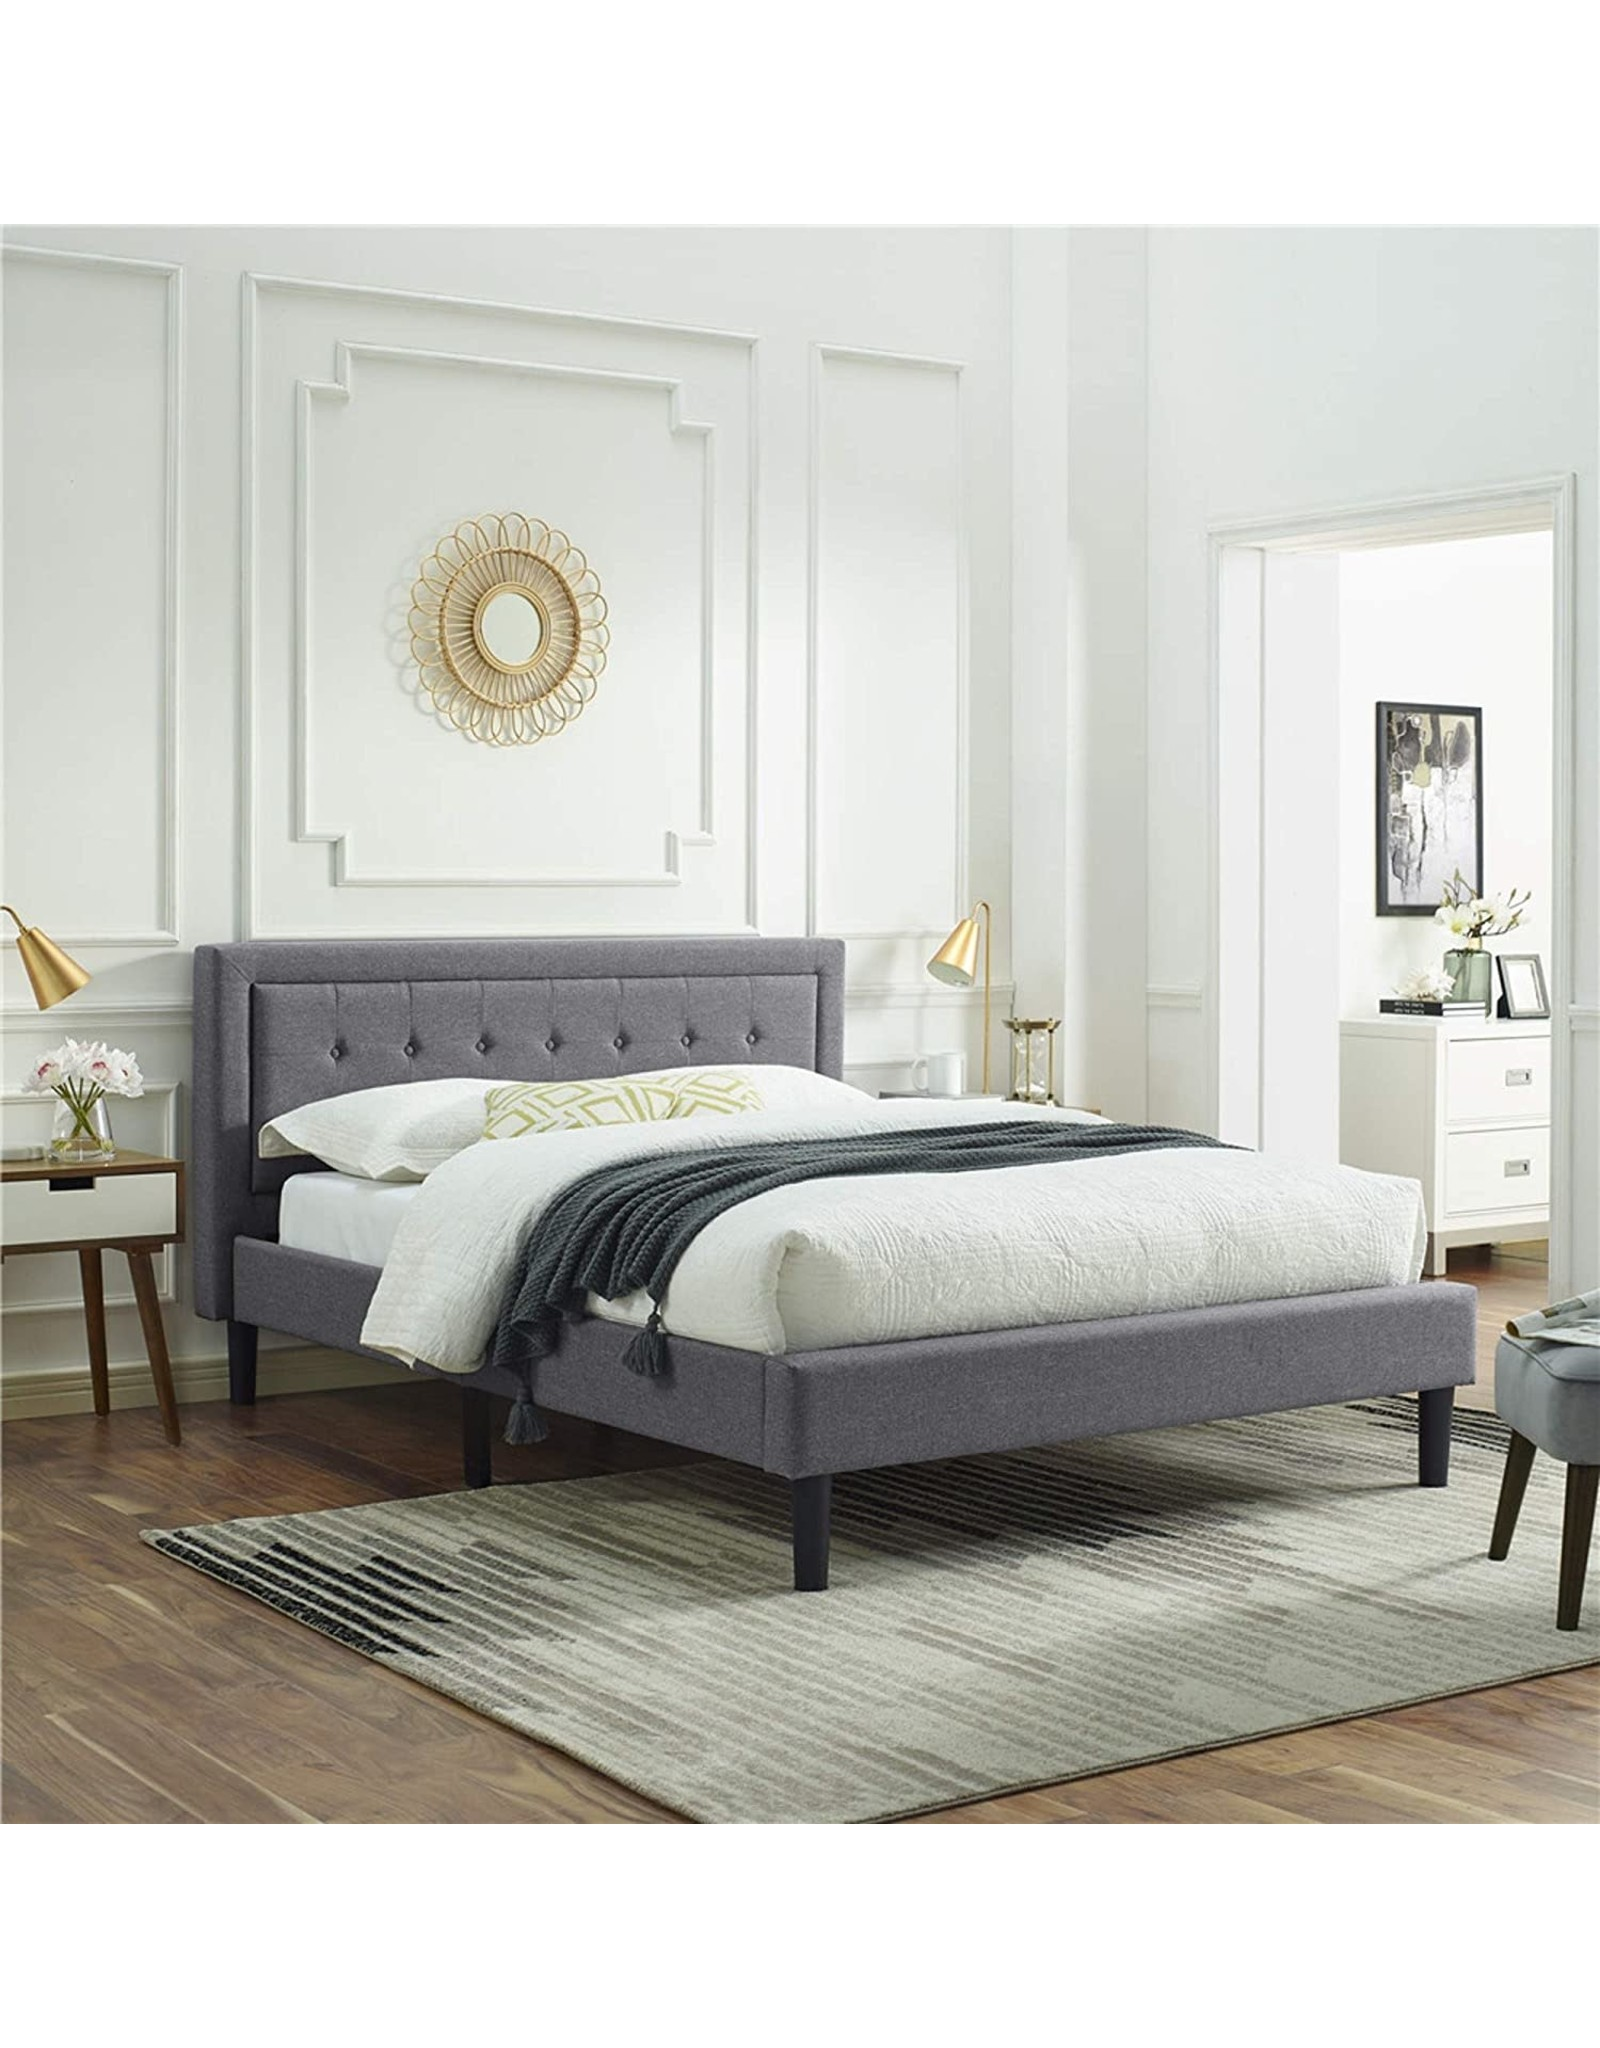 Classic Brands Classic Brands Mornington Upholstered Platform Bed  Headboard and Metal Frame with Wood Slat Support, King, Light Grey